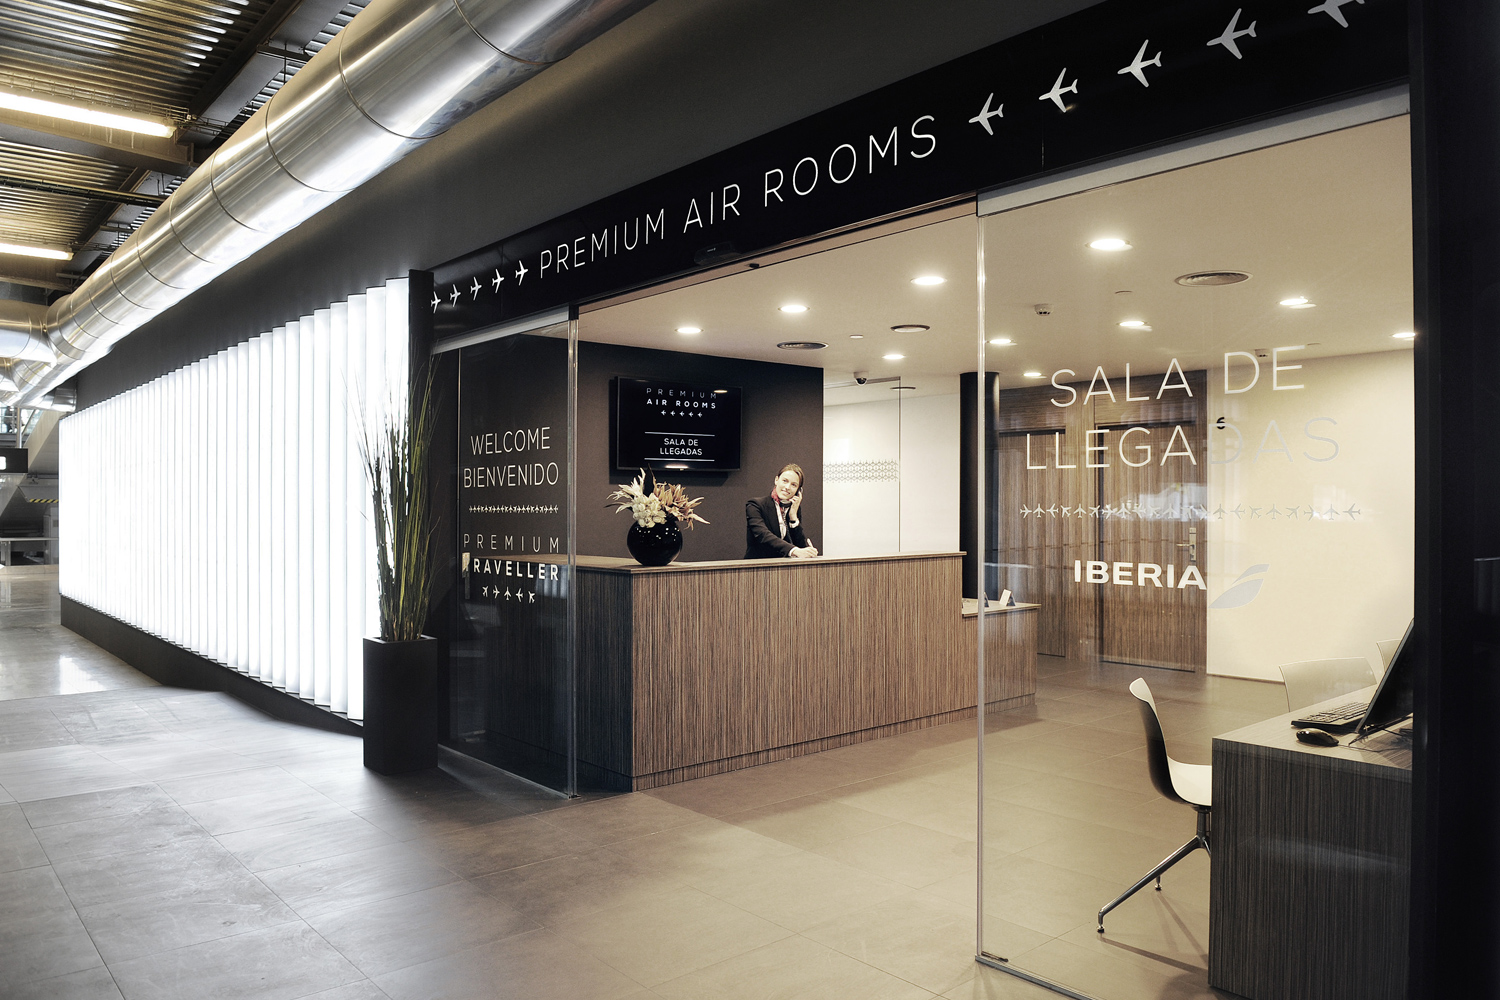 4-AIR-ROOMS-T4-MAD-AIRPORT-UP-TO-YOU-STUDIO-HOSPITALITY-&-LEISURE